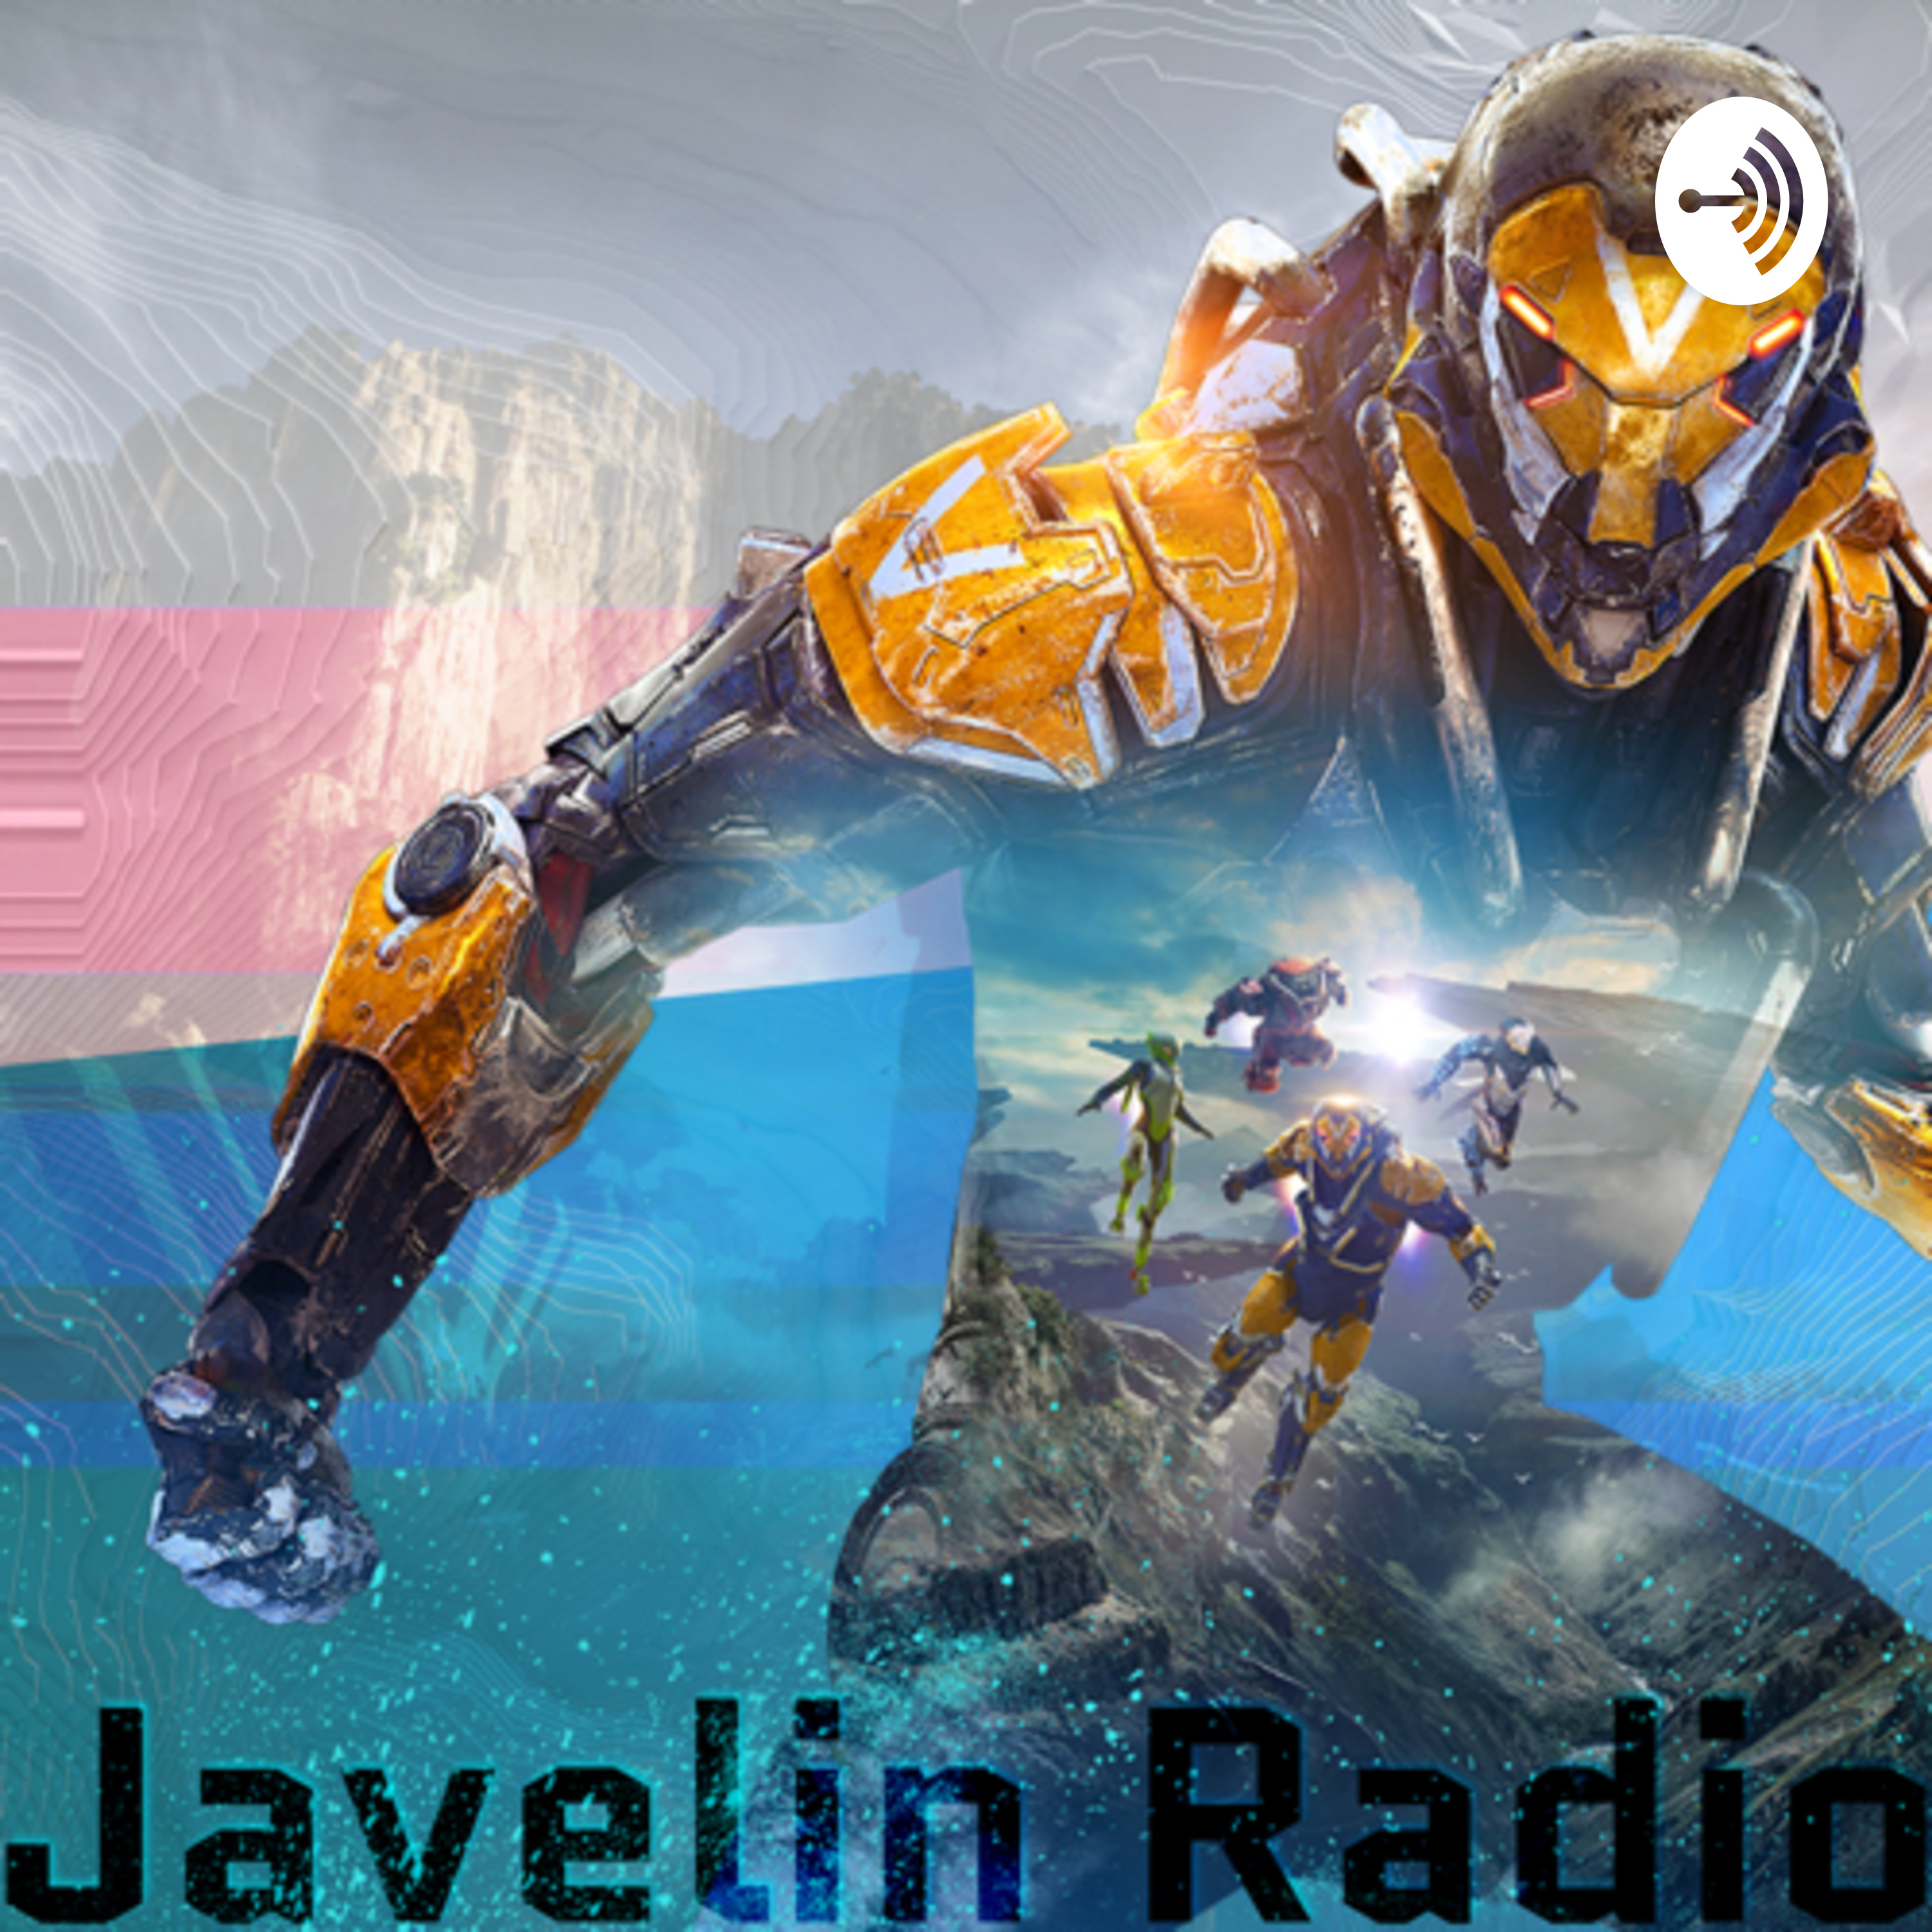 Javelin Radio Listen Via Stitcher For Podcasts